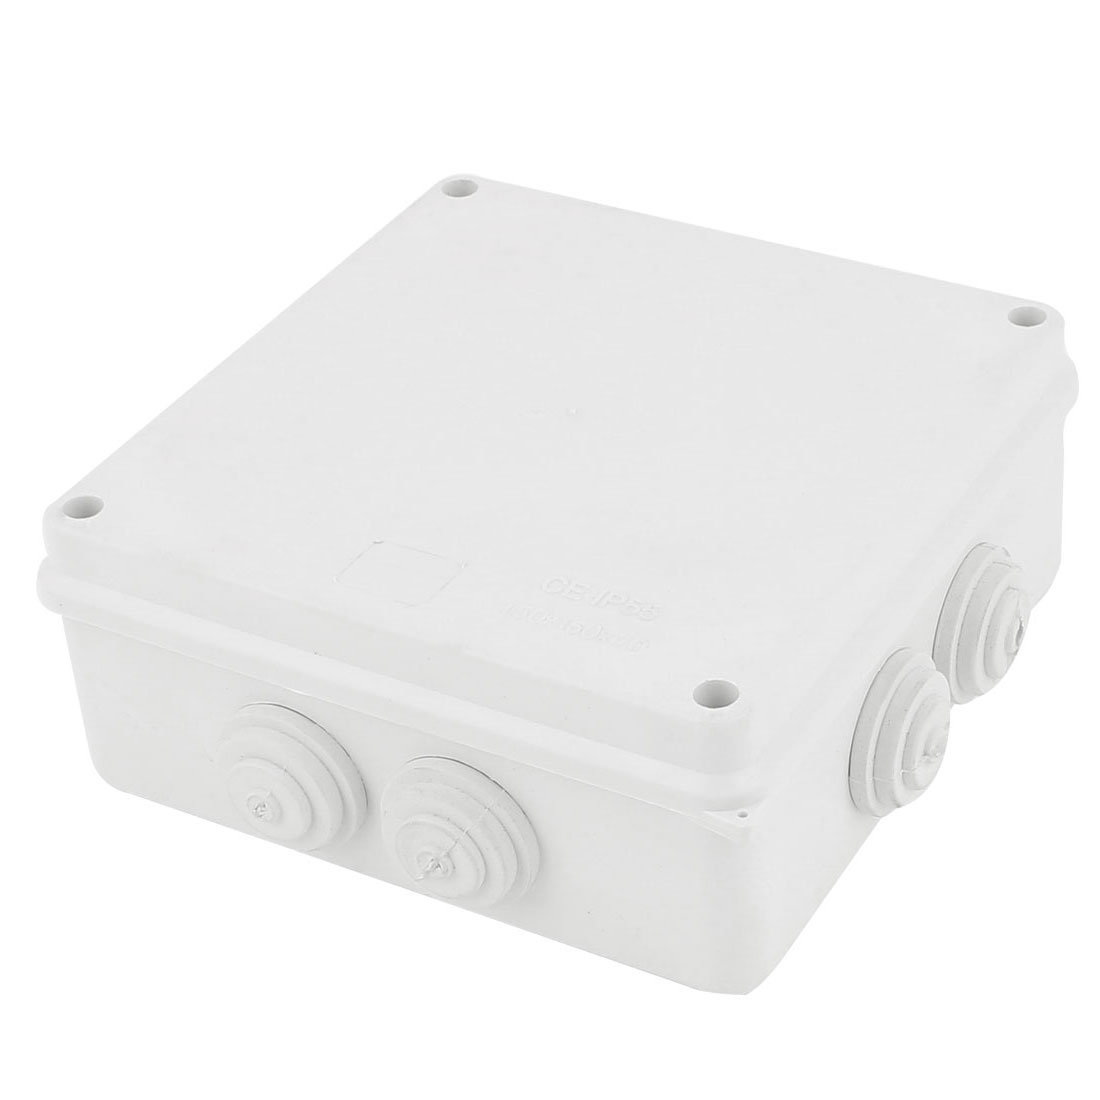 White ABS Dustproof IP55 Enclosure Square Junction Box 150x150x70mm